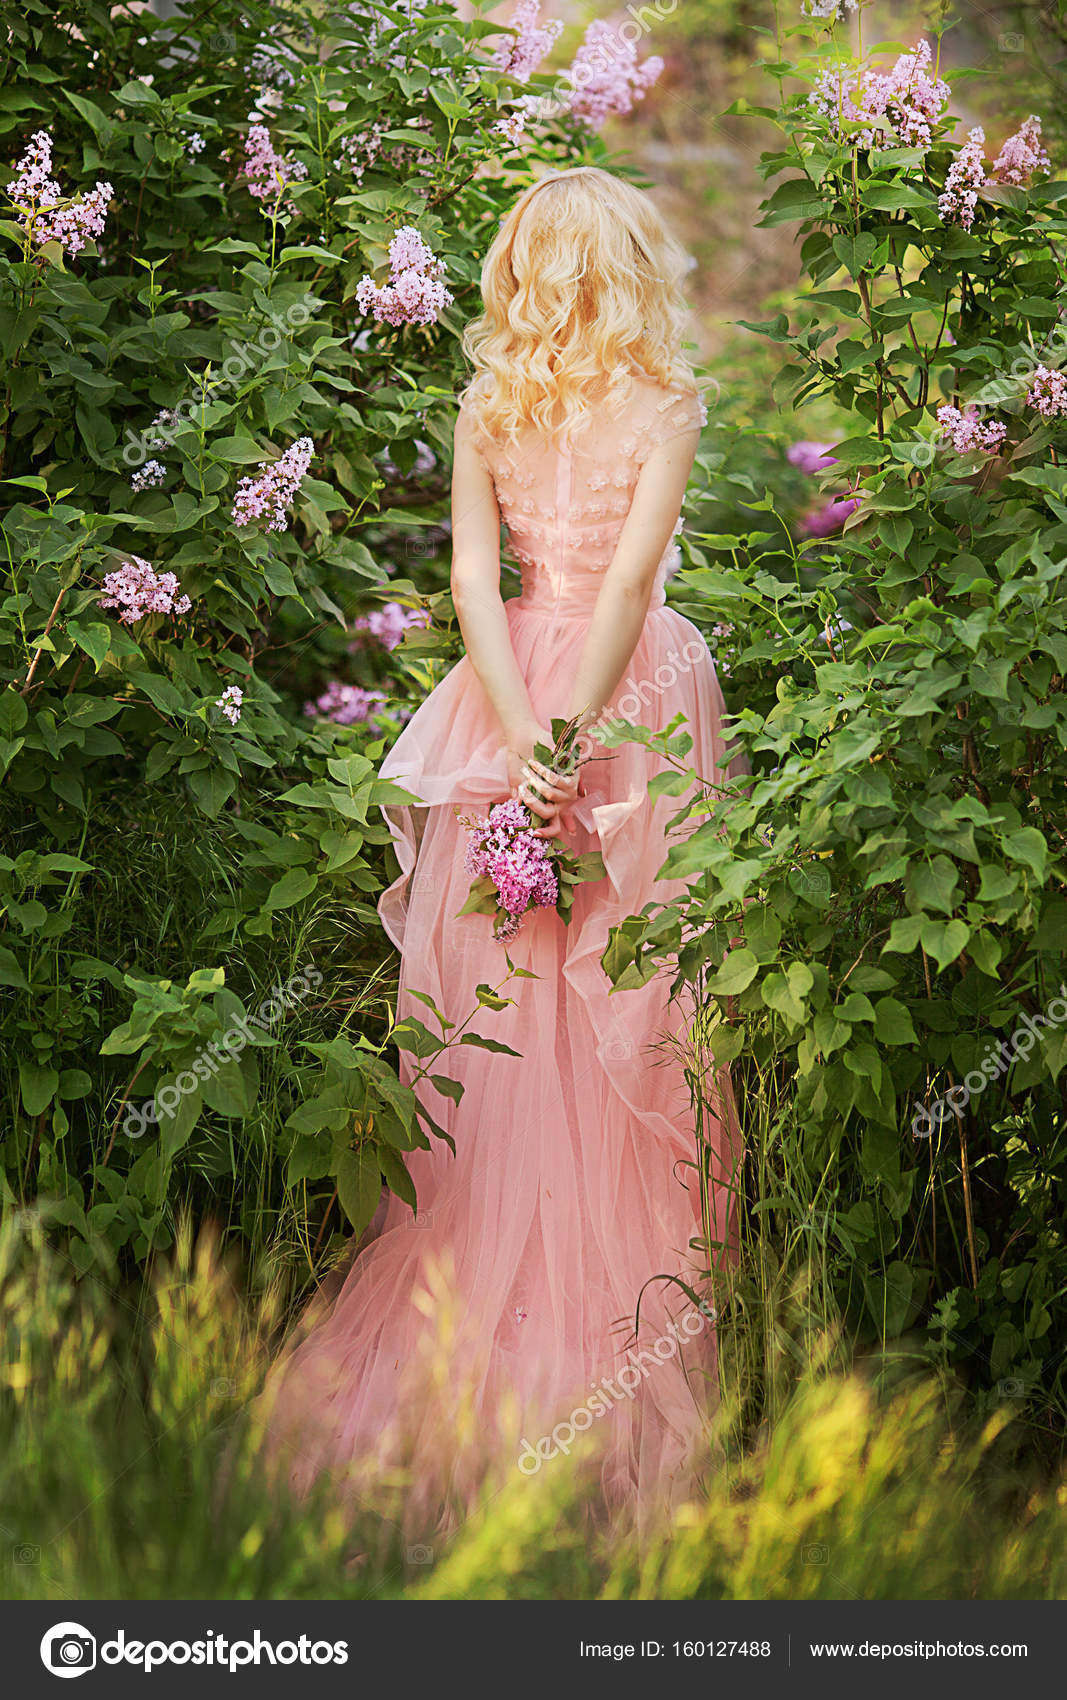 Beautiful woman enjoying lilac garden young woman with flowers in a girl in a lavender pink garden photo by olenakucher izmirmasajfo